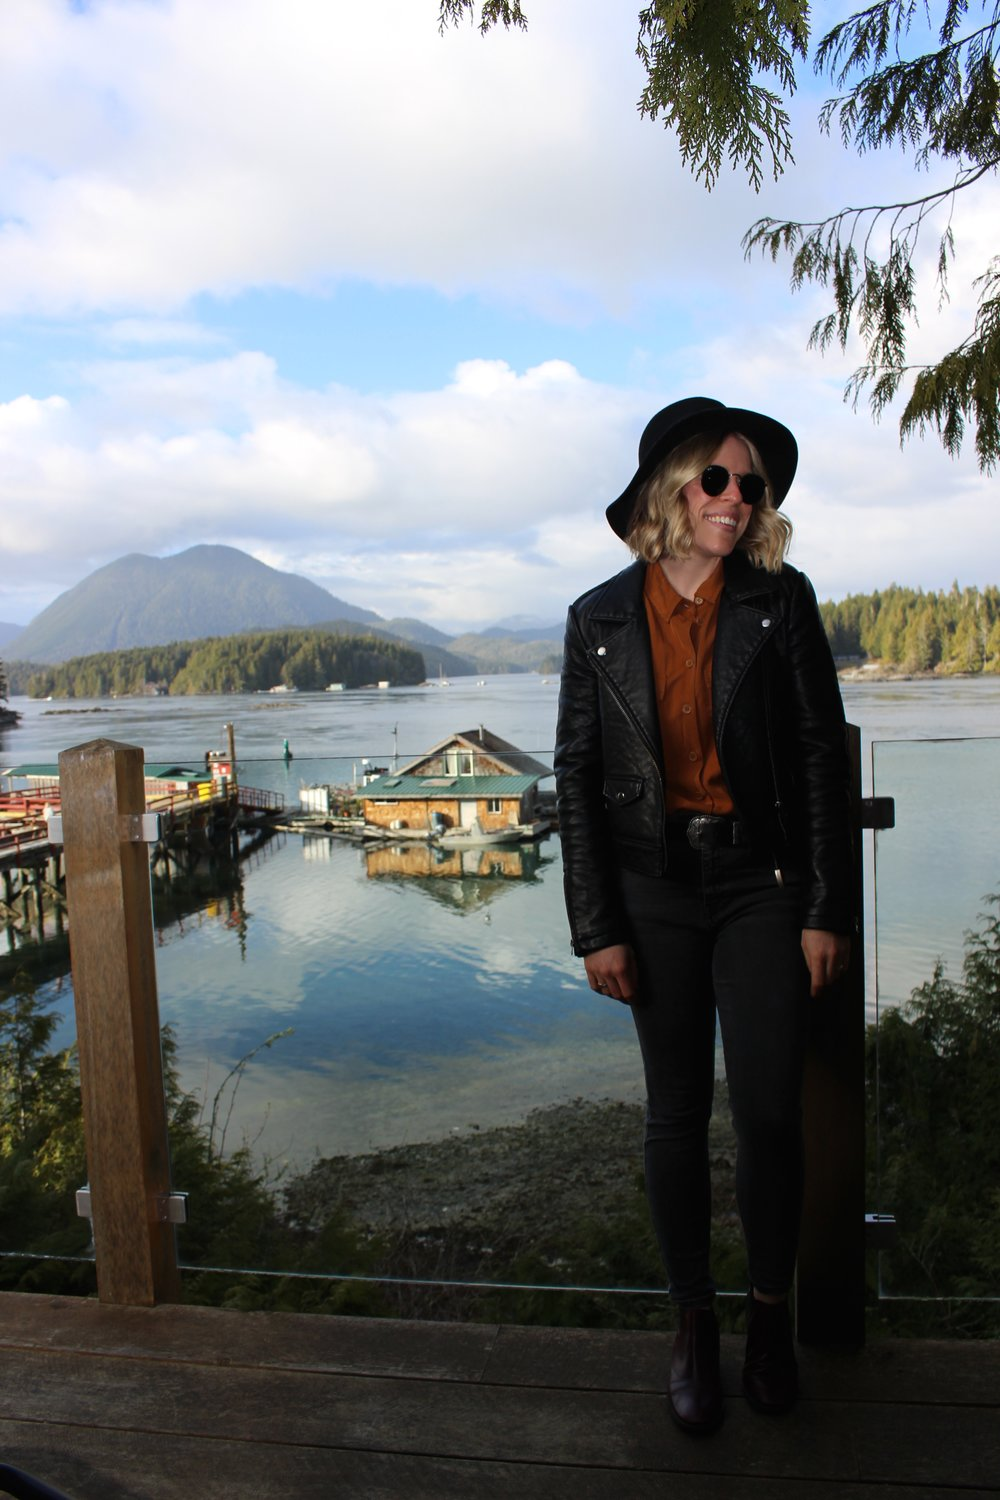 Wearing Wool Hat from Kelowna,    Topshop        Leather Jacket,    Topshop    Blouse,    Topshop    Jeans,    Topshop    Booties,    Topshop    Belt, Ray Ban Sunglasses